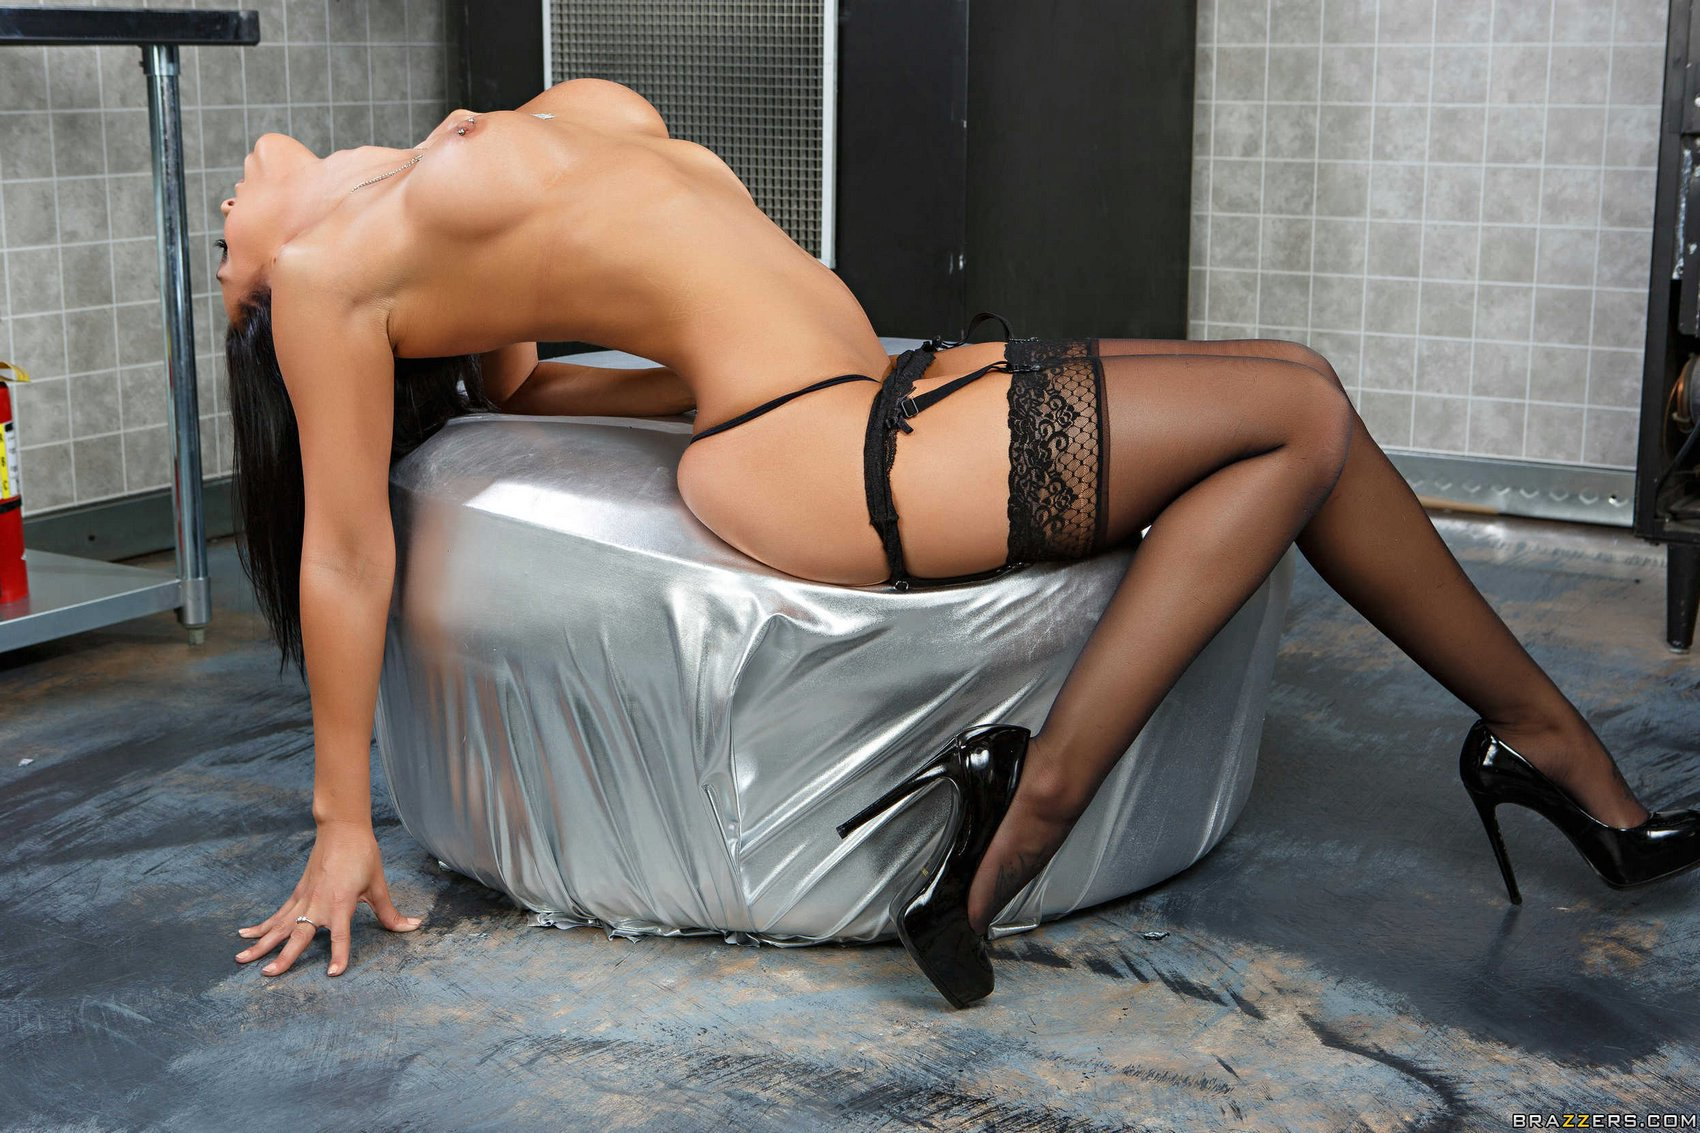 Rachel starr stockings impossible the